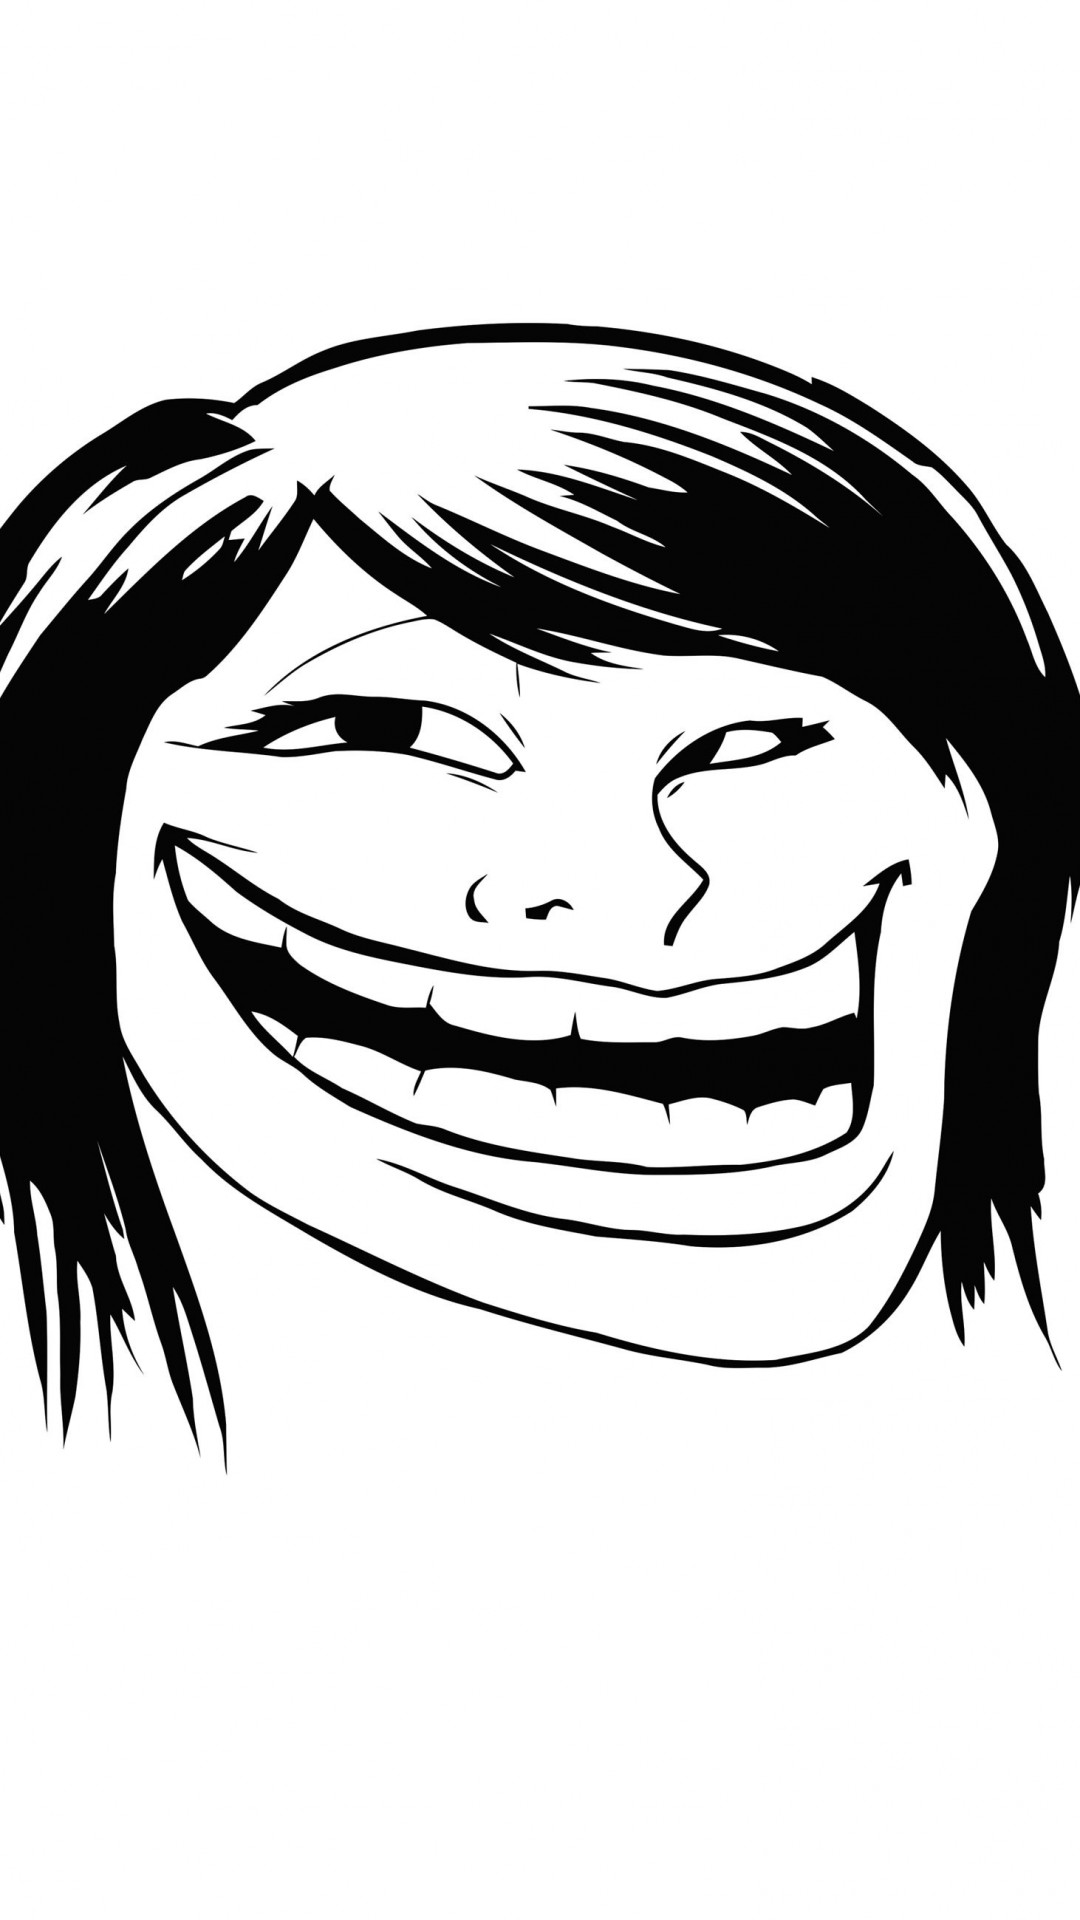 Female Troll Face Meme Wallpaper for Google Nexus 5X